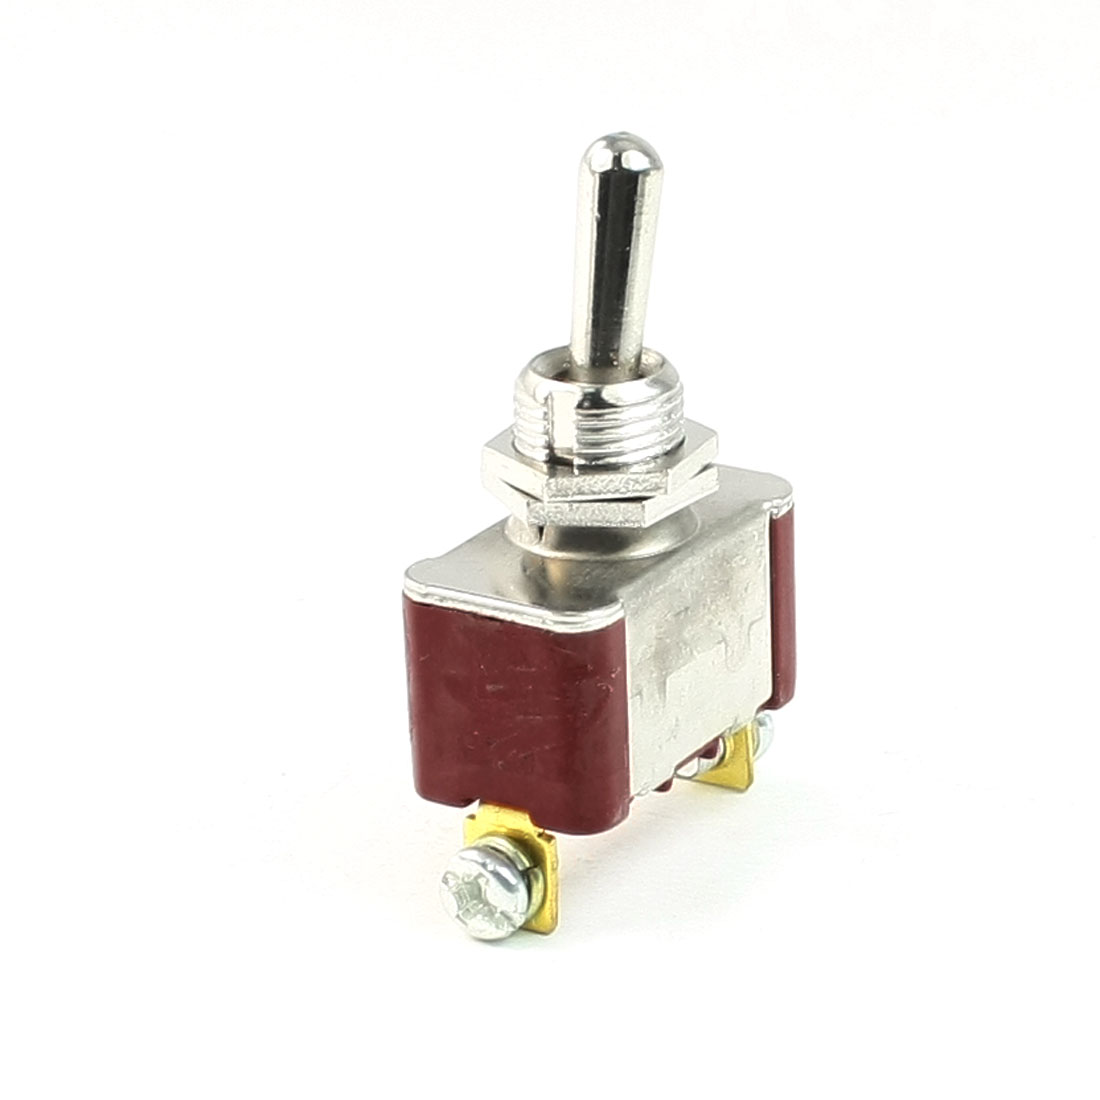 AC 250V/6A 125V/15A SPST ON/OFF Toggle Switch for KEYANG 100 Angle Grinder